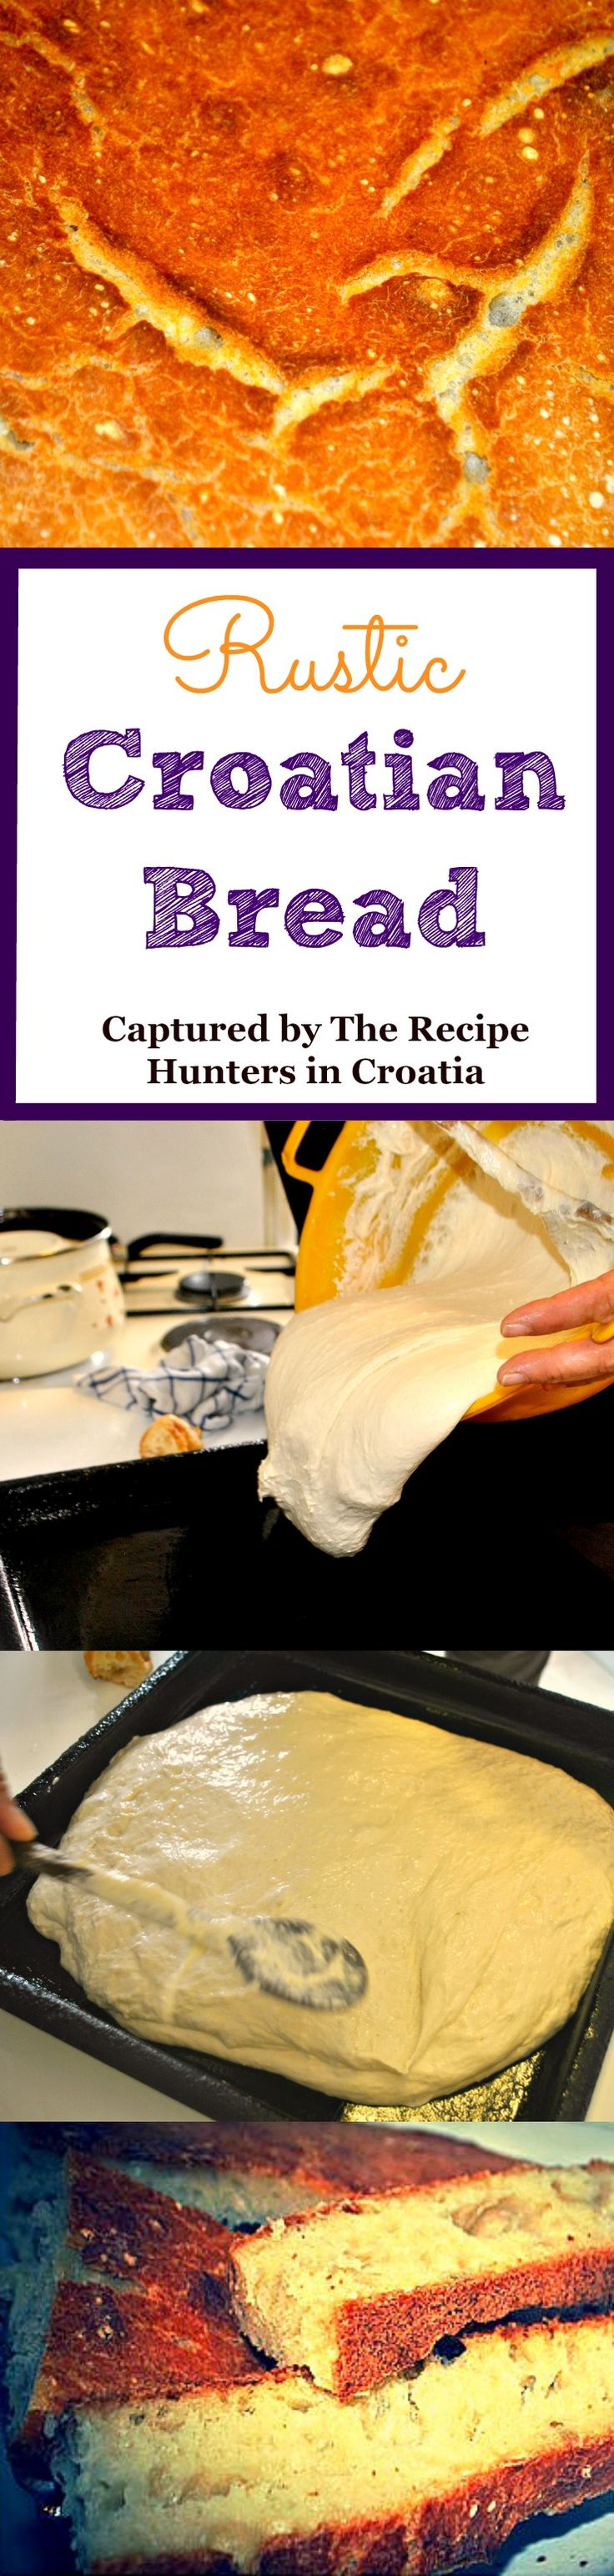 Rustic Croatian Bread Recipe - Crunchy on the outside, soft and dense on the inside, this bread provides the perfect blend of textures. This recipe is quick and easy, and best of all, any  leftover dough can be fried for dessert!